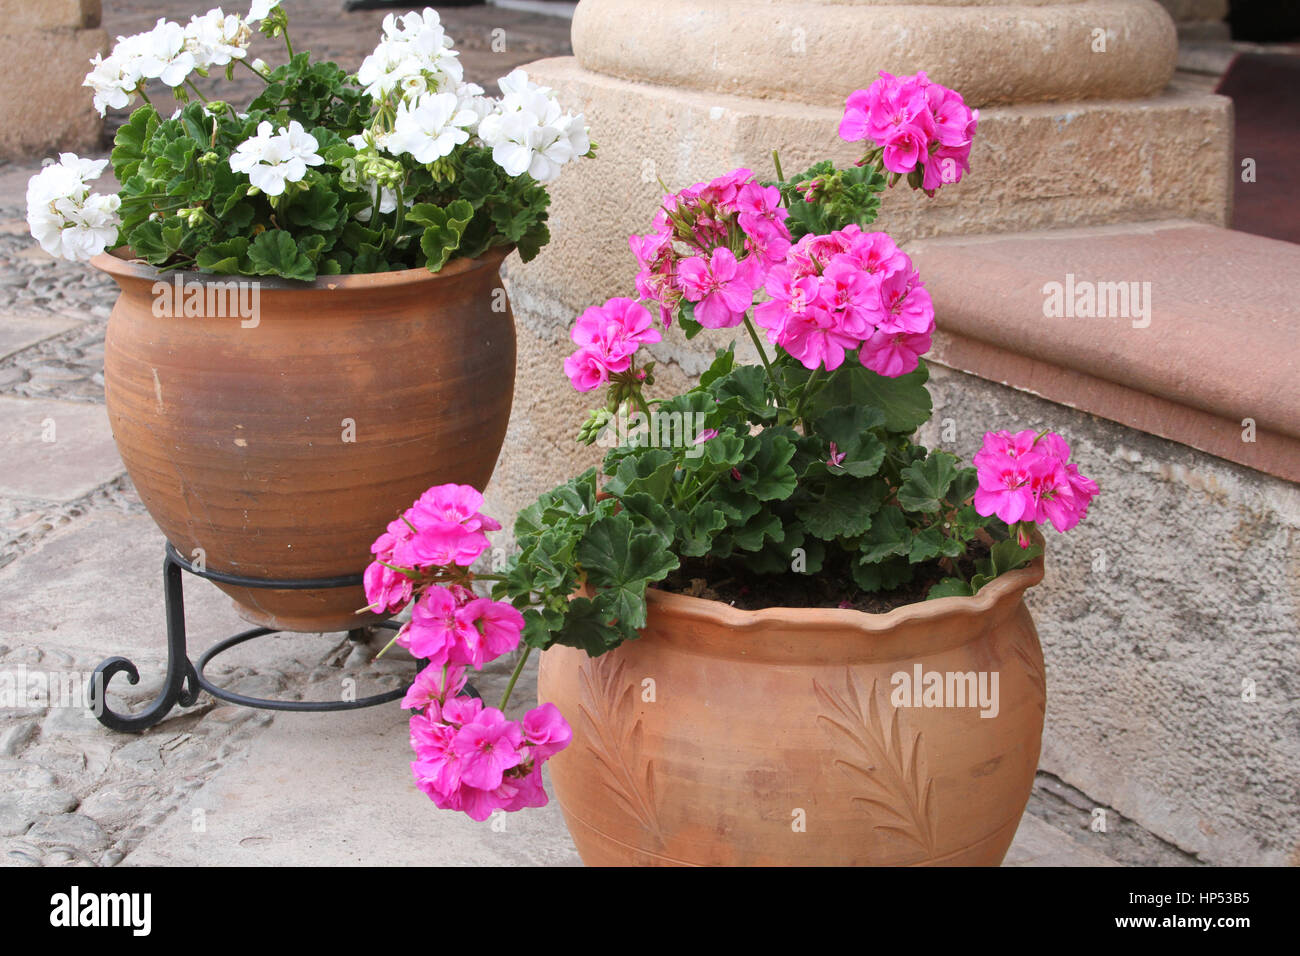 Terra cotta pots of pink and white geraniums on a patio stock photo royalty free image - Care geraniums flourishing balcony porch ...